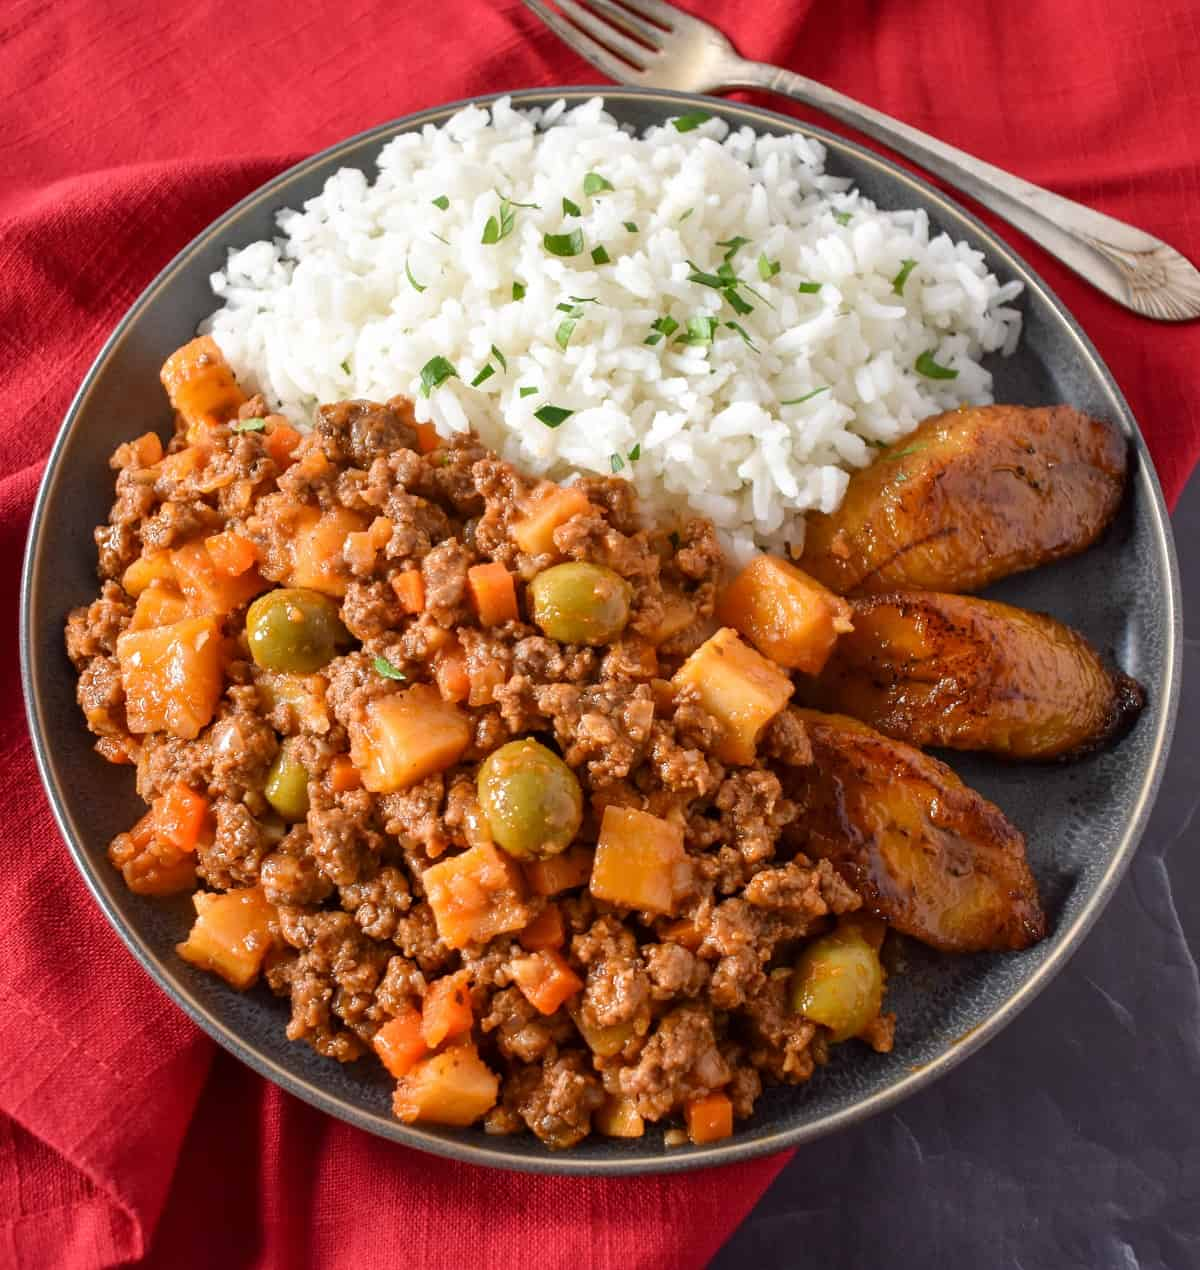 Close up image of the finished picadillo served with white rice and fried sweet plantains on a gray plate.